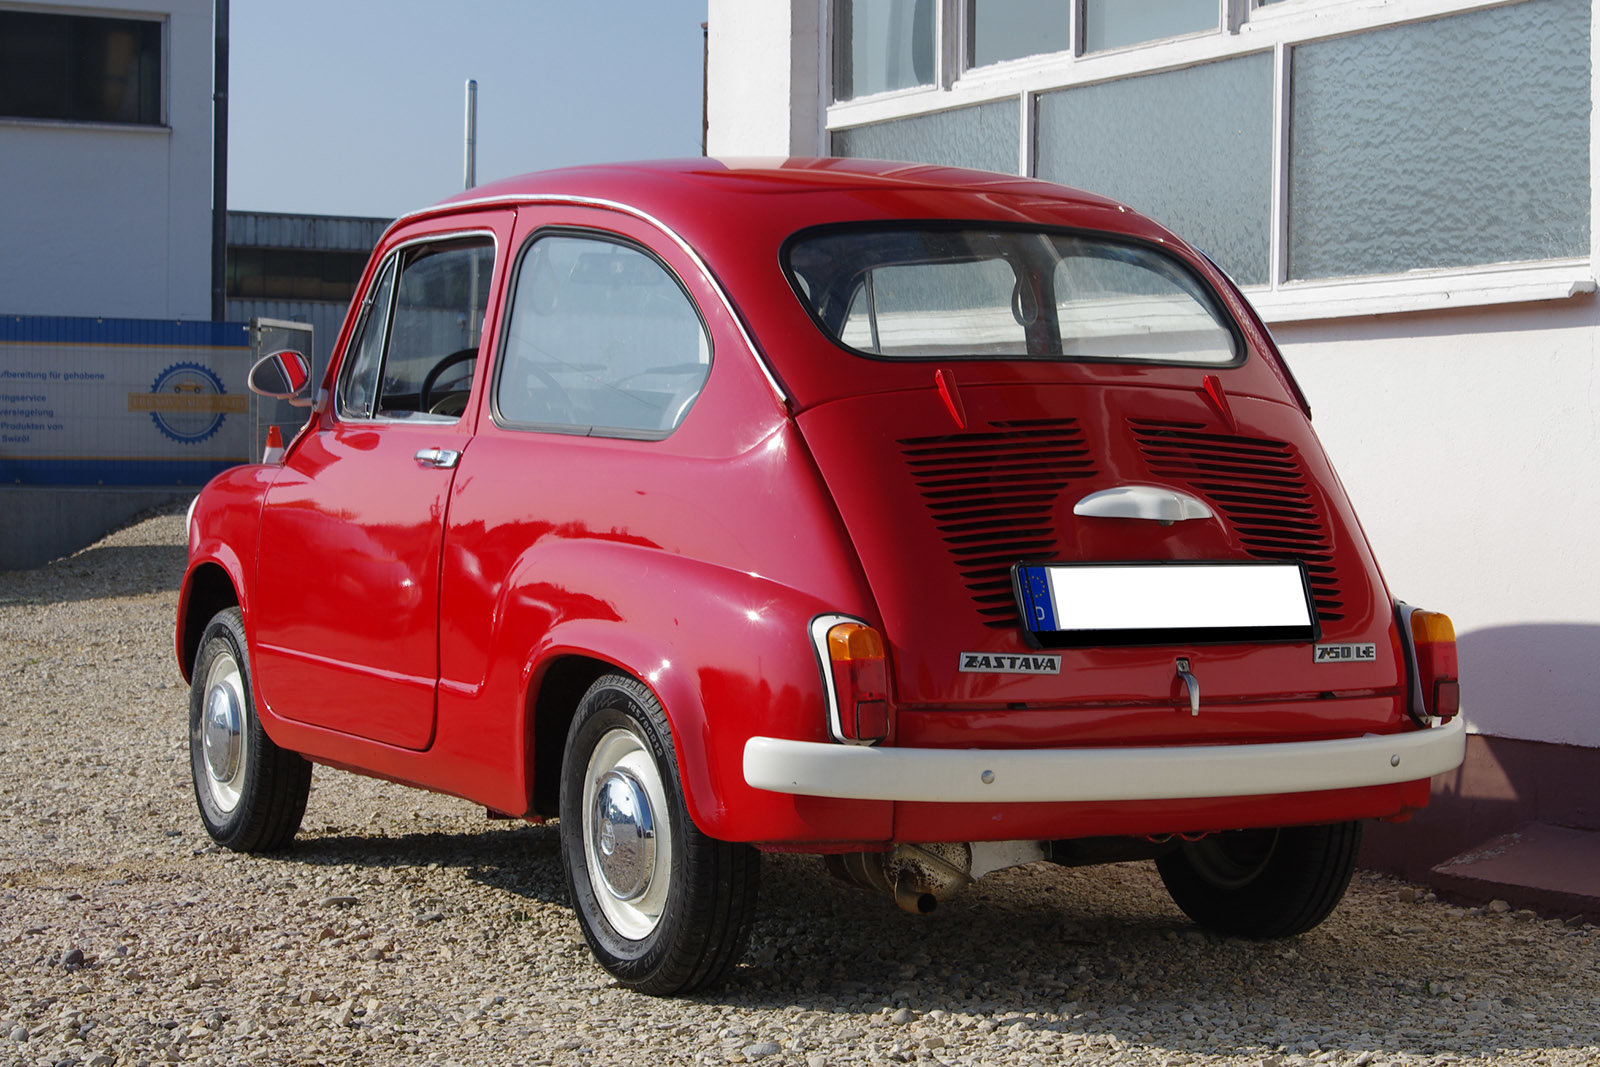 1983 Zastava 750 partially restored - German registration For Sale (picture 3 of 6)